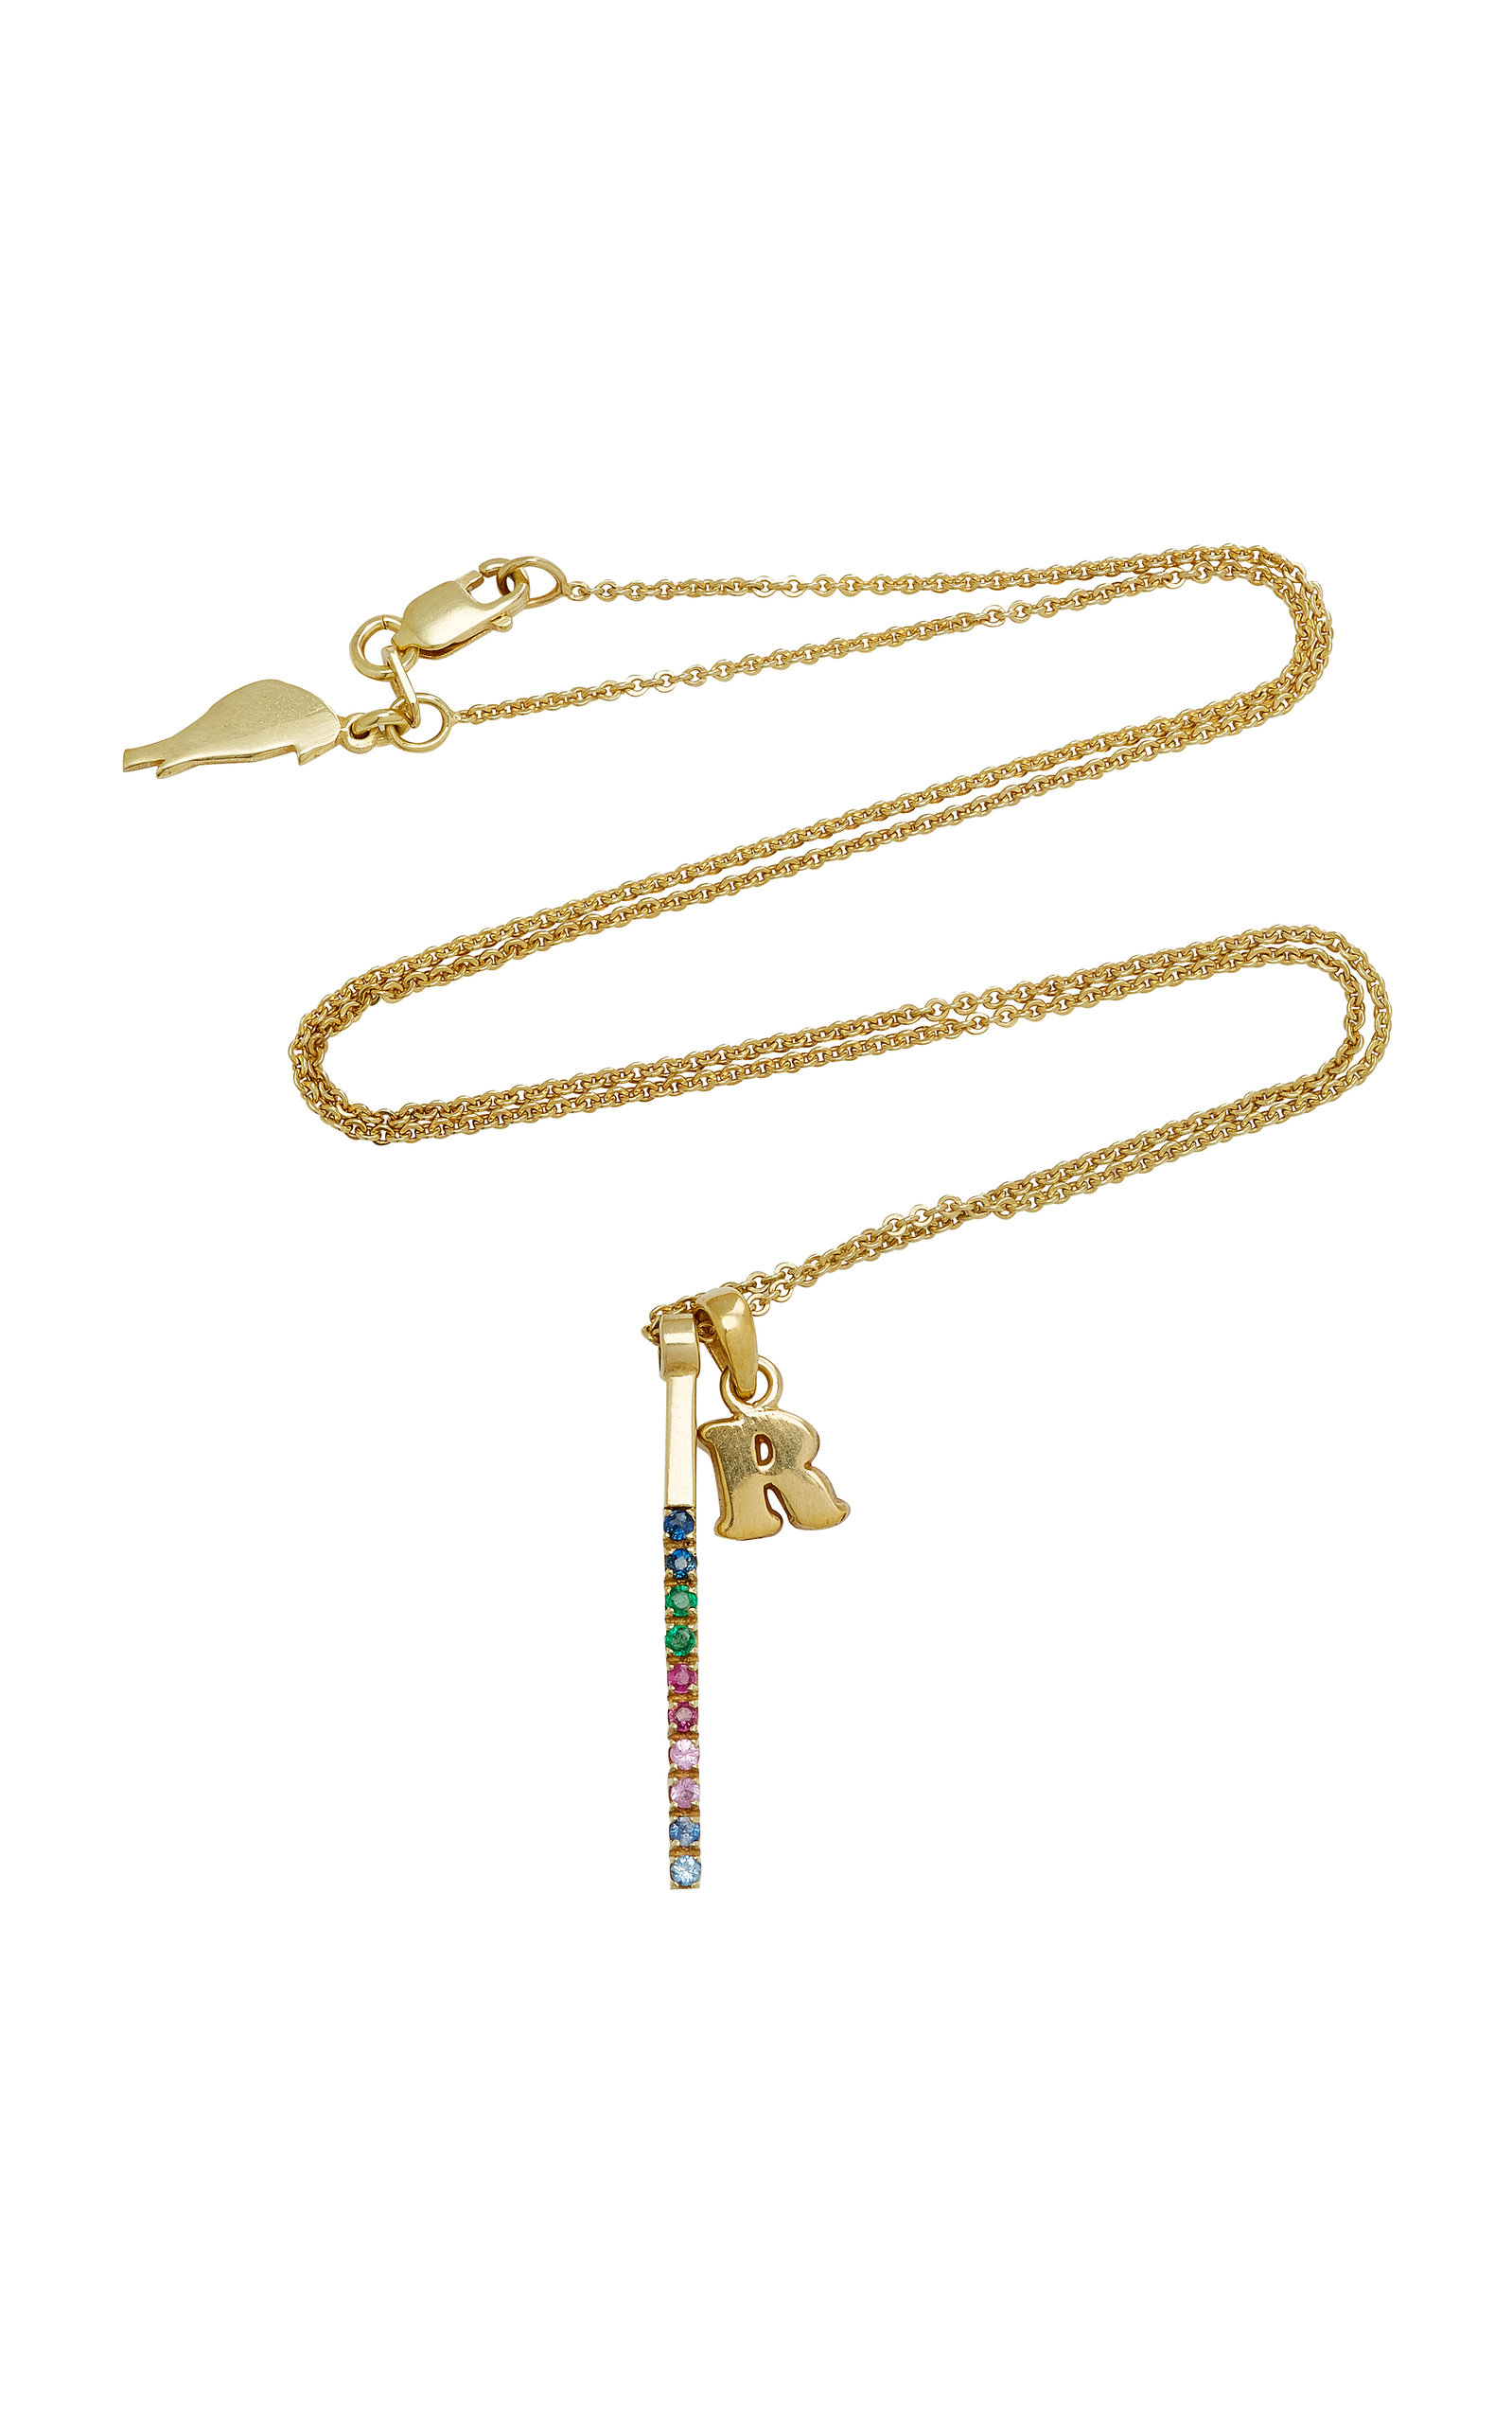 AMANDINA M'ONOGRAM LETTER CHARM WITH RAINBOW BAR NECKLACE